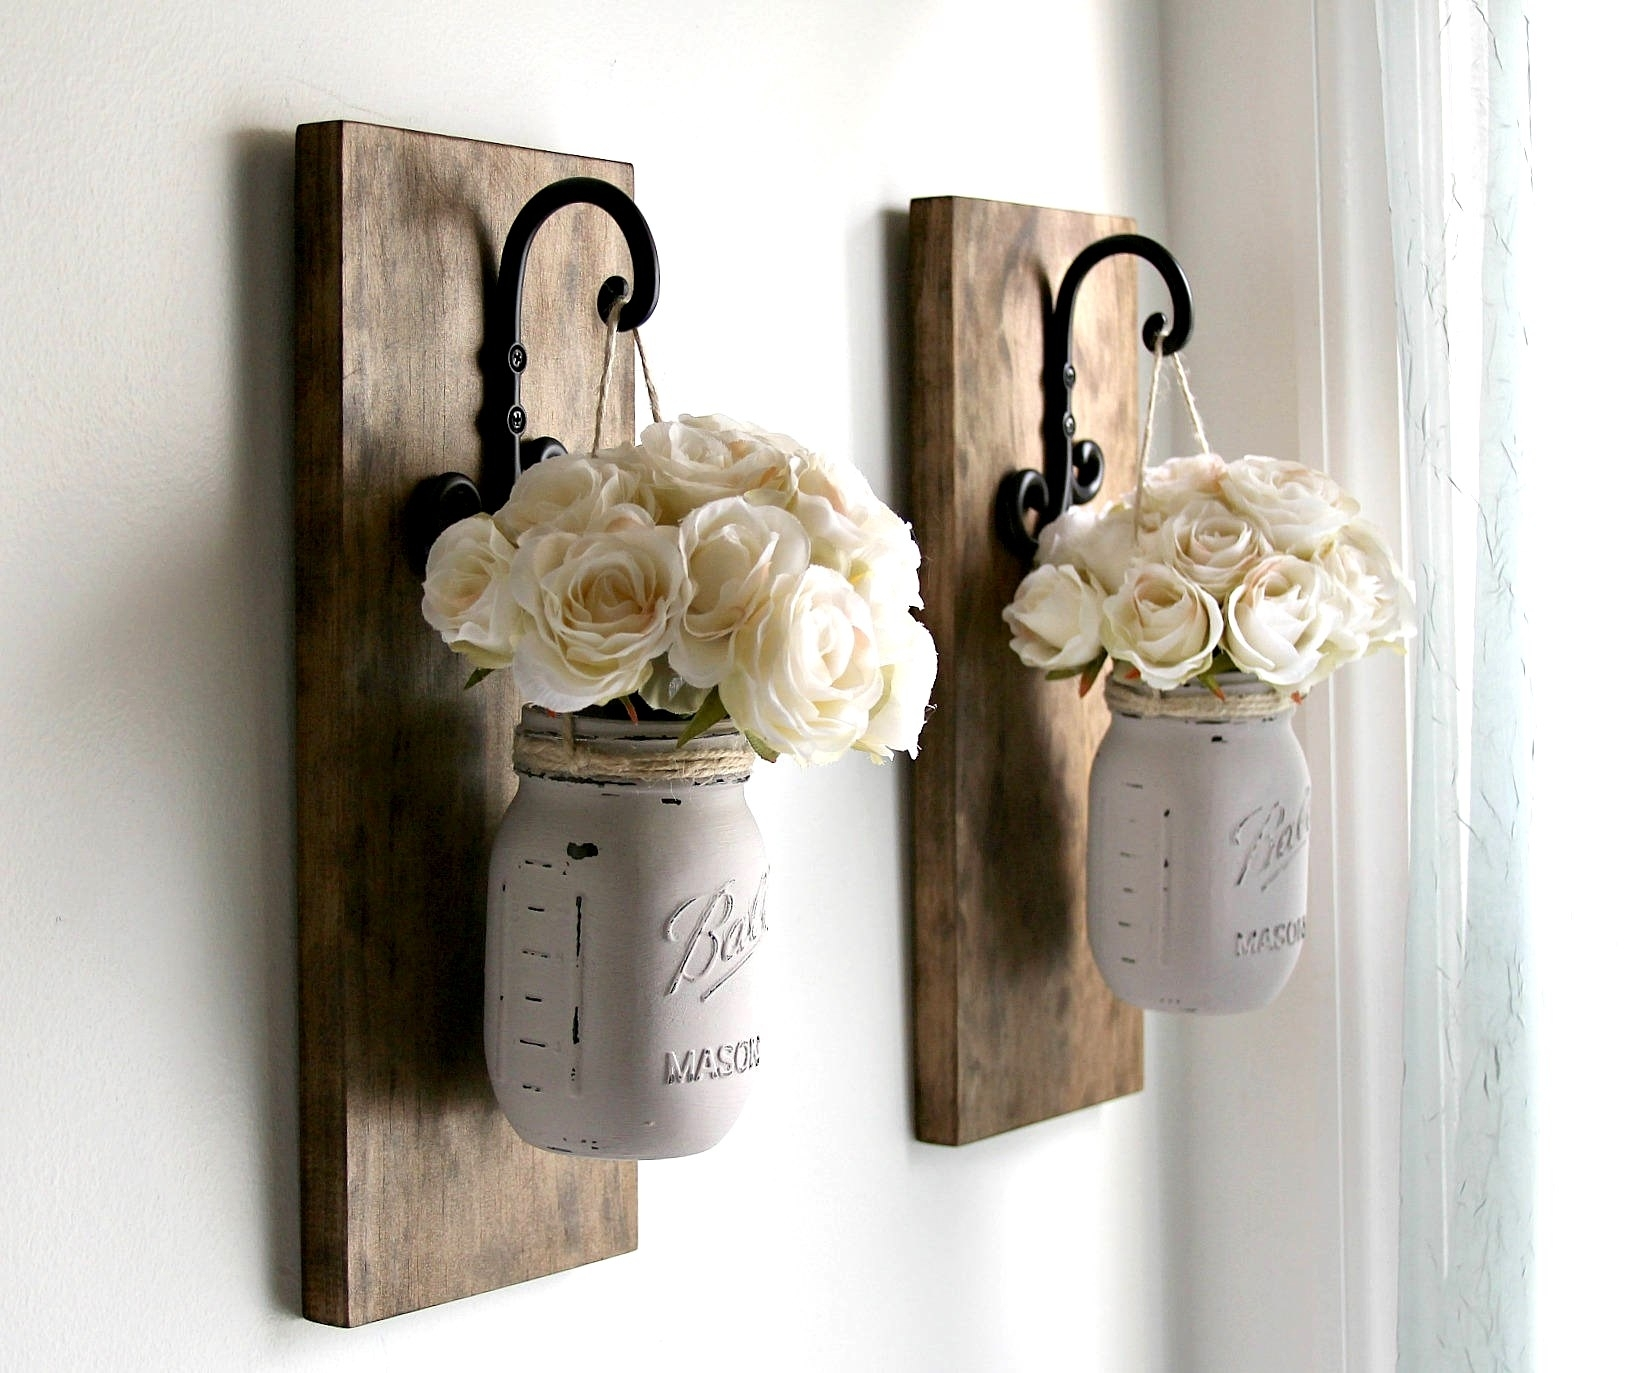 Rustic Sconces Rustic Wall Decor Mason Jars Sconce Farmhouse | Art intended for Mason Jar Wall Art (Image 16 of 20)